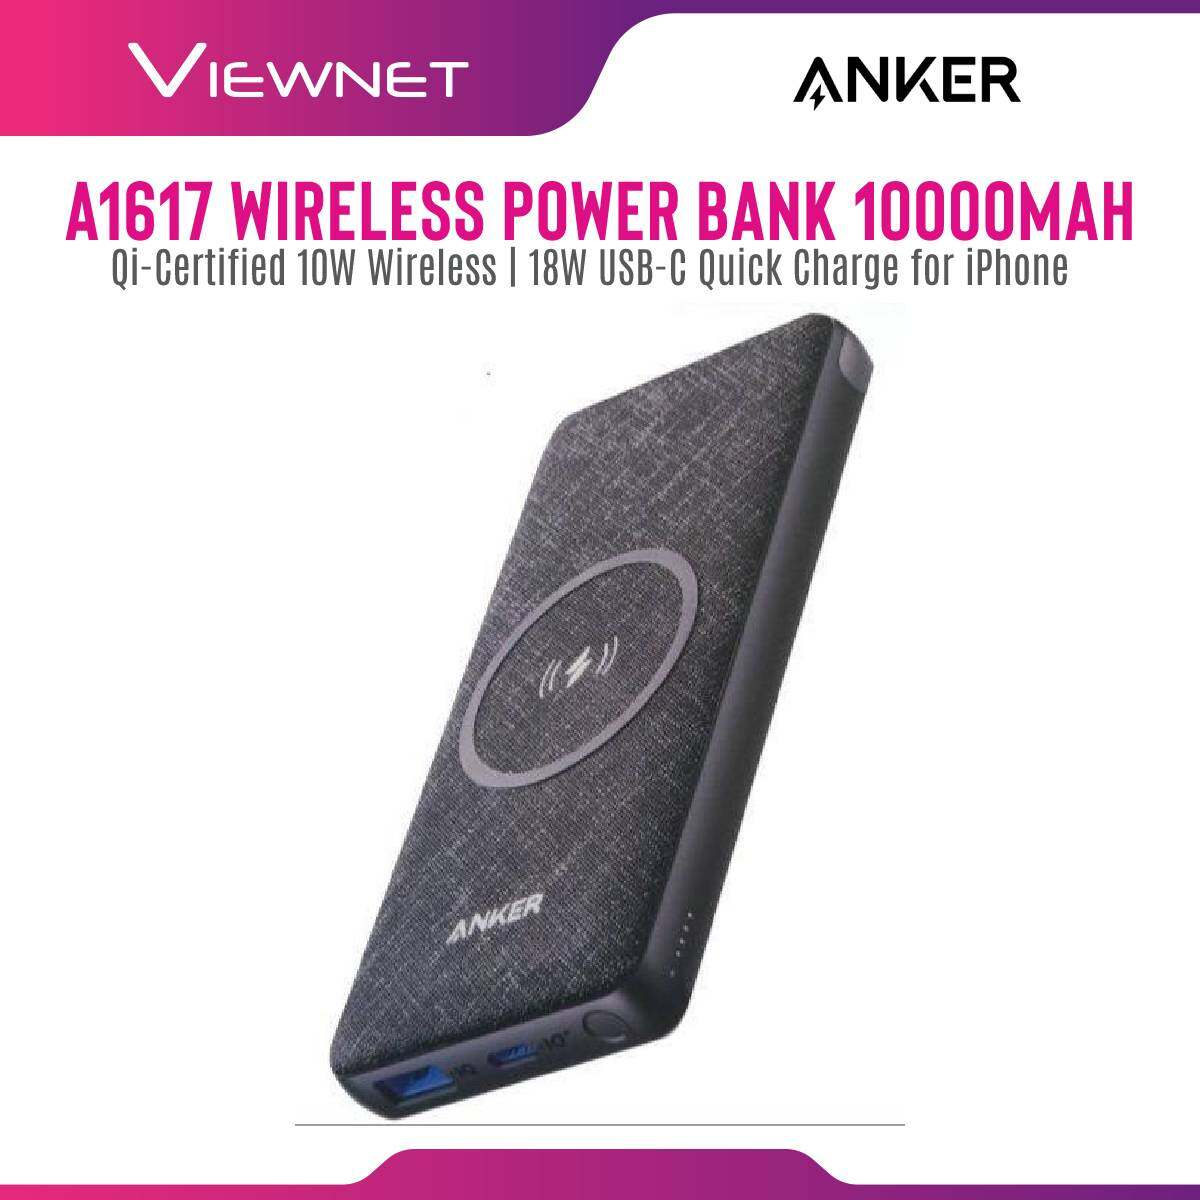 Anker A1617 PowerCore III 10K Wireless Power Bank  with Qi-Certified 10W Wireless and 18W USB-C Quick Charge for iPhone